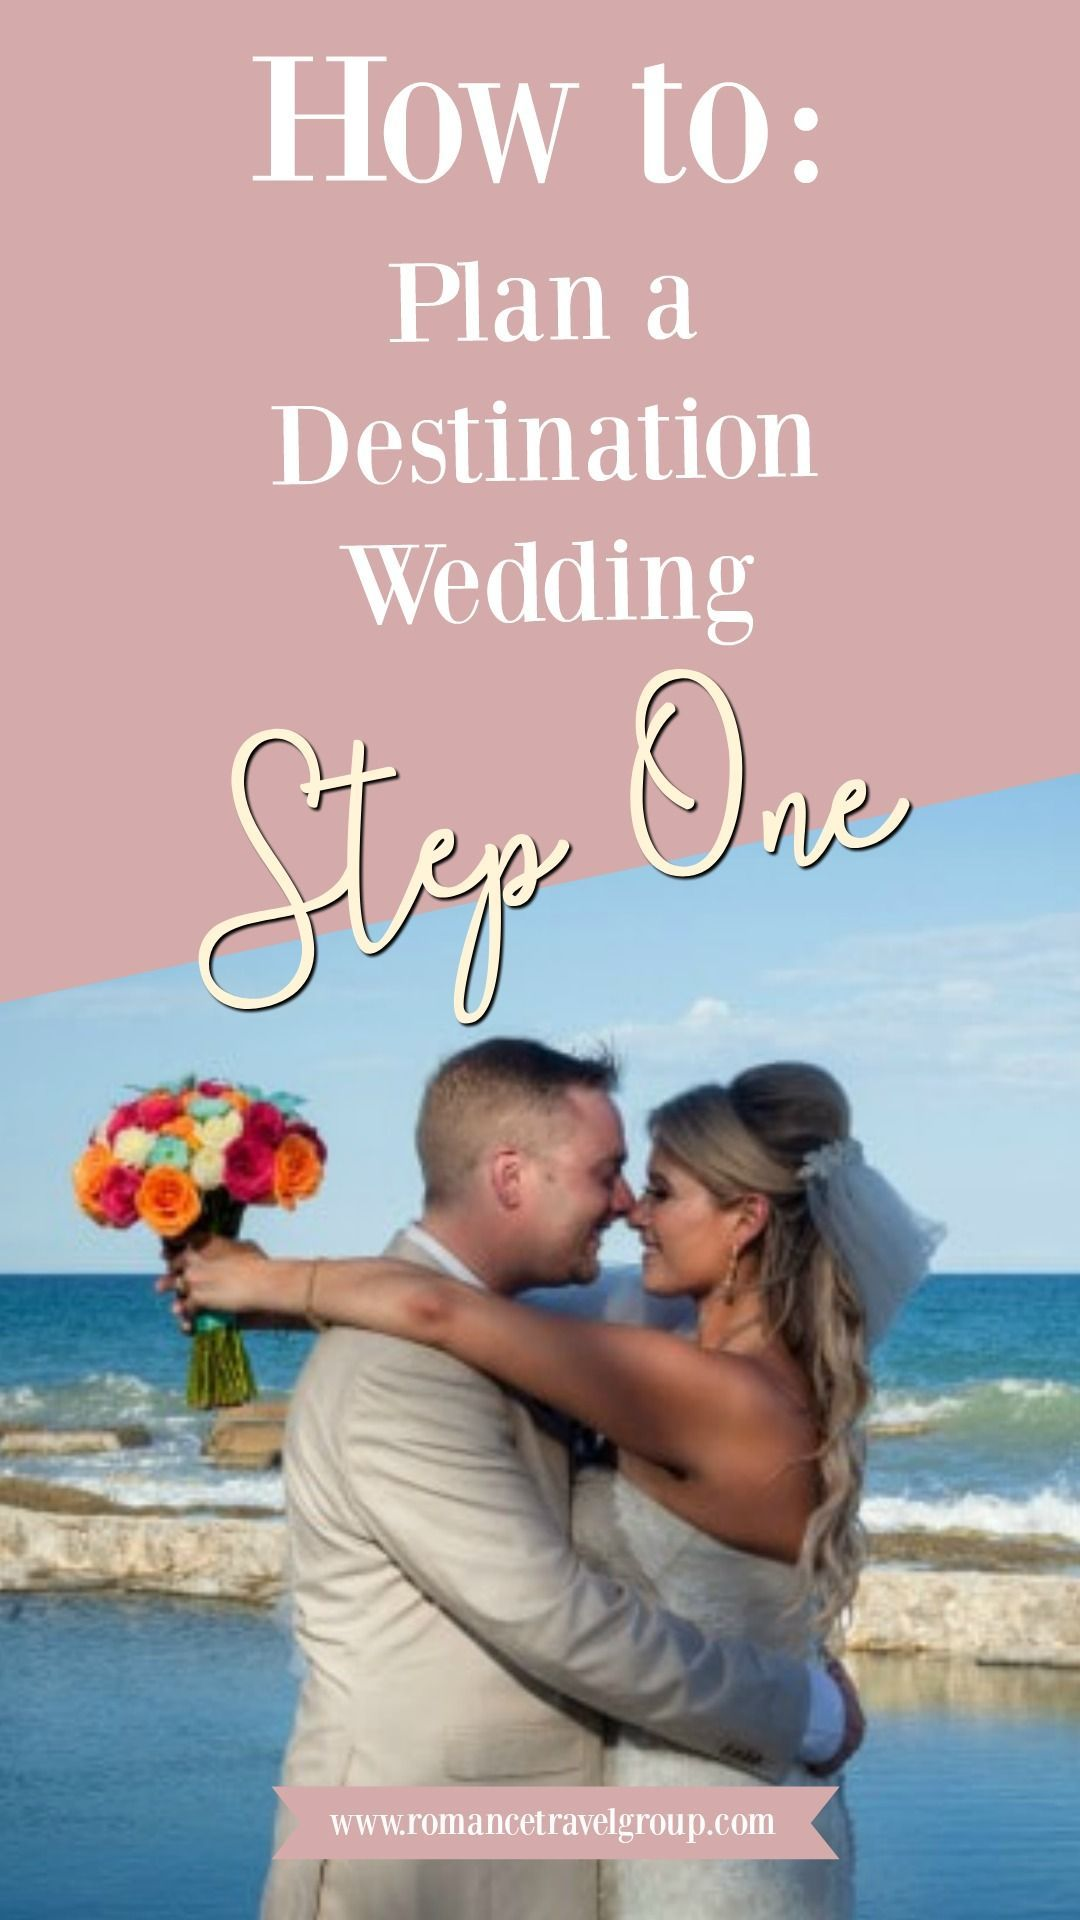 Destination Wedding Planning Step 1 Destination Wedding Planning Destination Wedding Wedding Planning